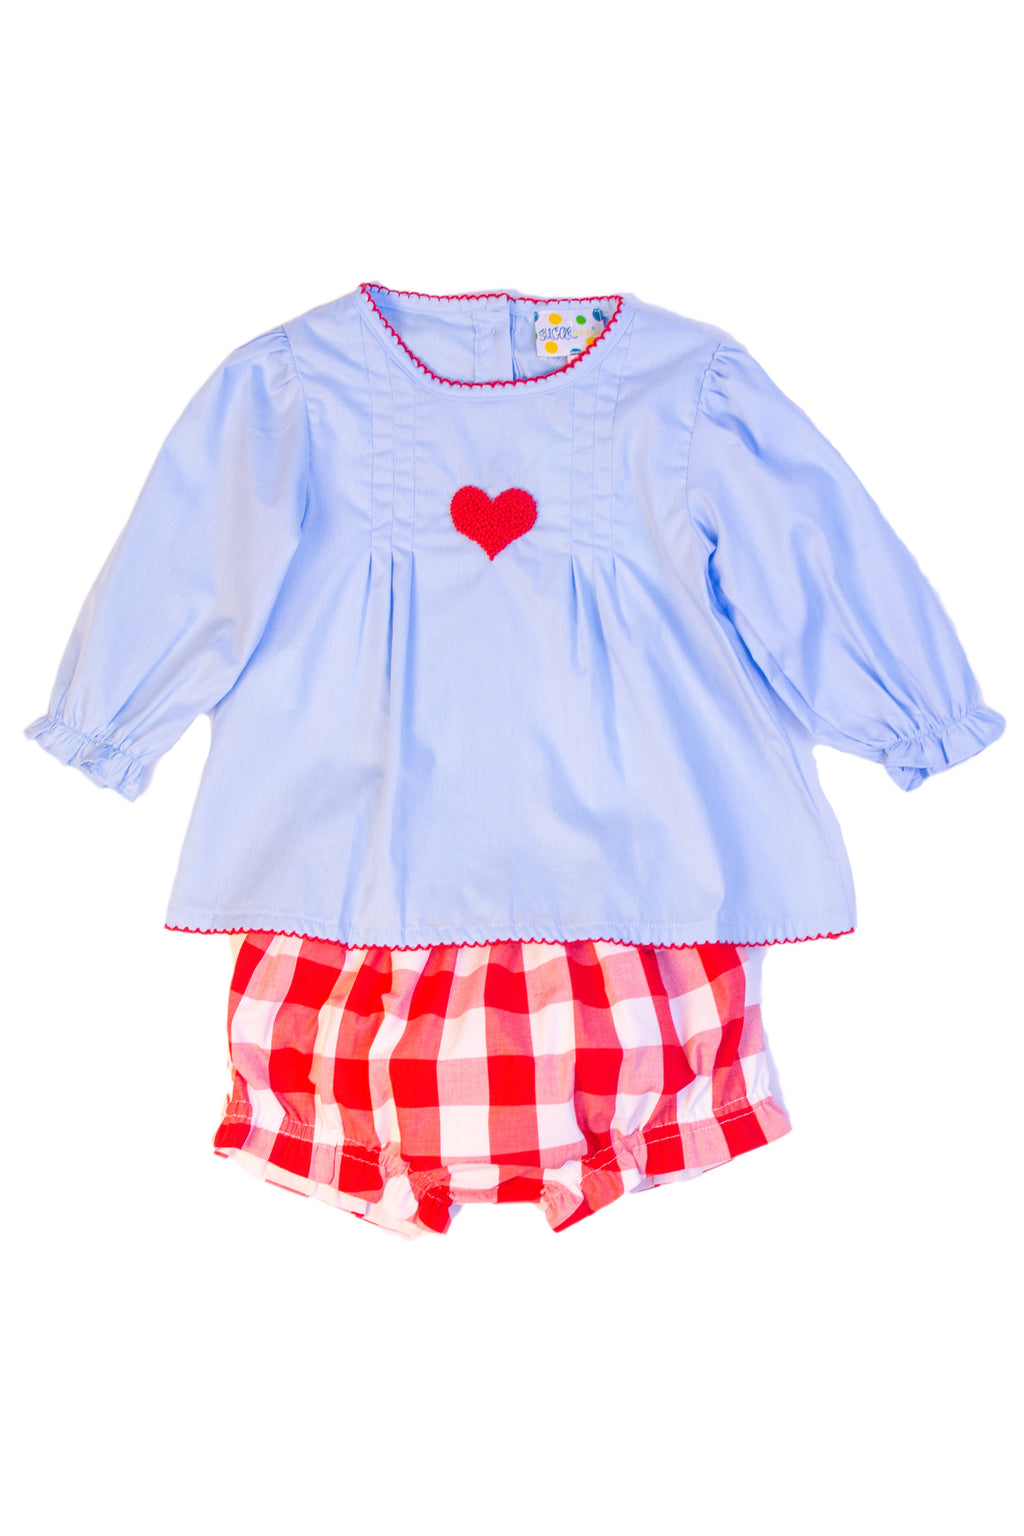 Girls French Knot Heart Bloomer Set